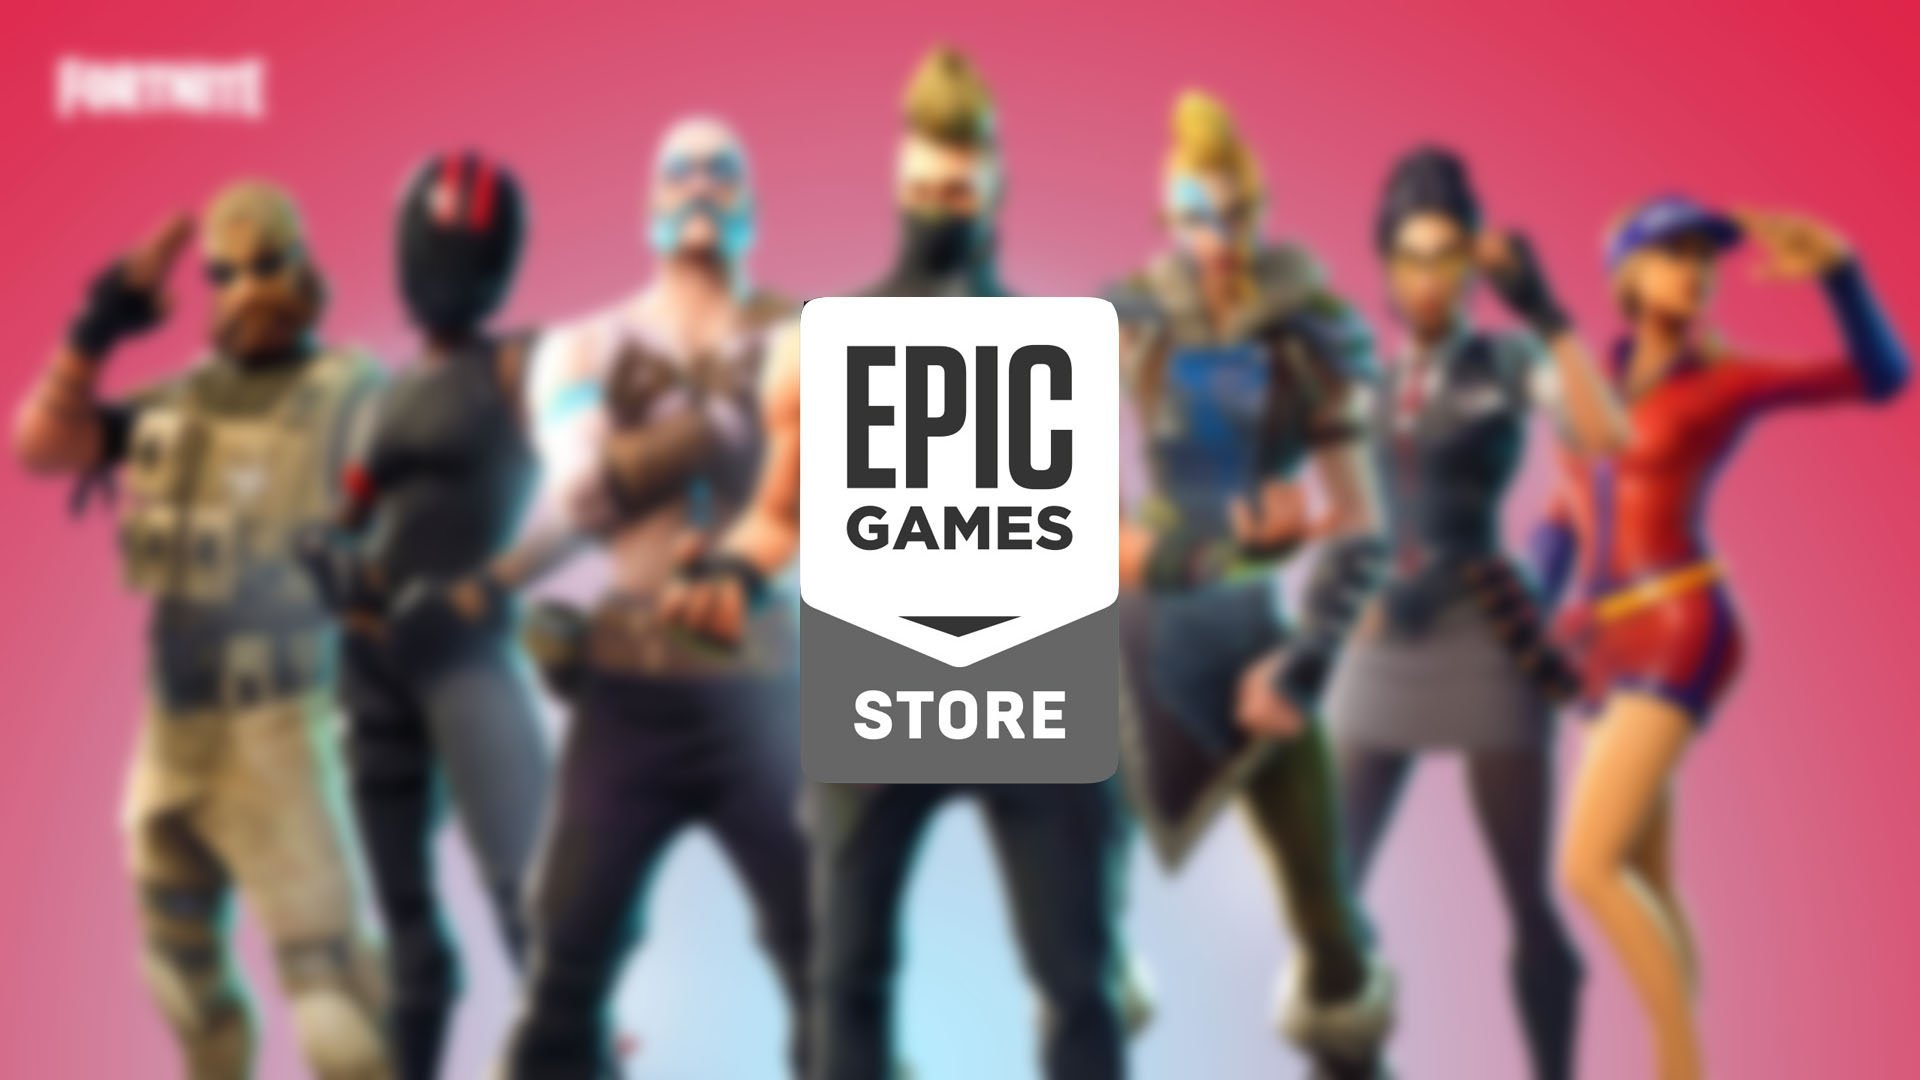 L'Epic Games Store perd des centaines de millions de dollars pour s'imposer face à Steam